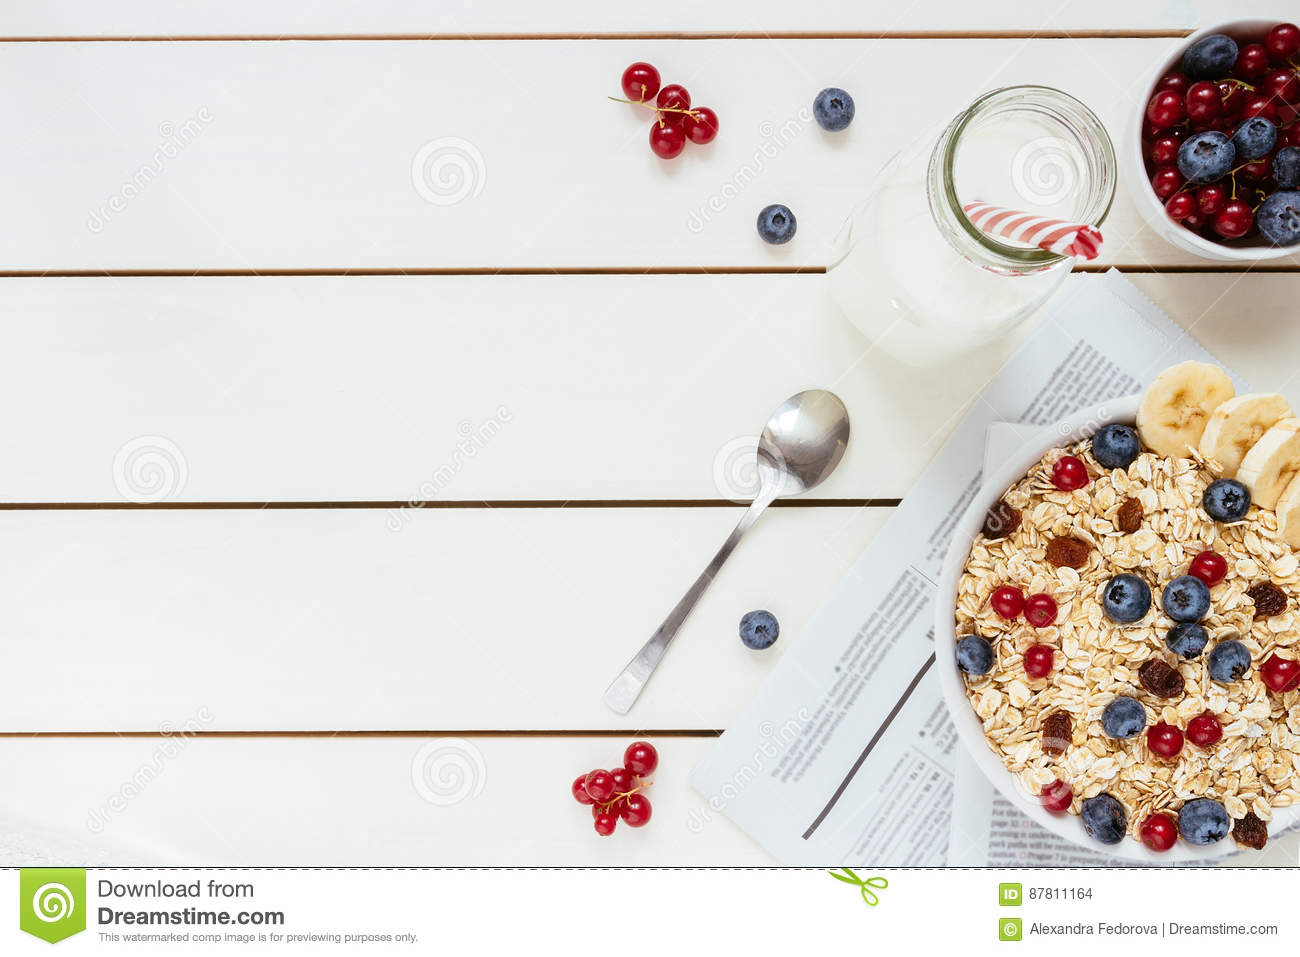 Healthy breakfast with berries and milk on the white wooden table with copy space, top view